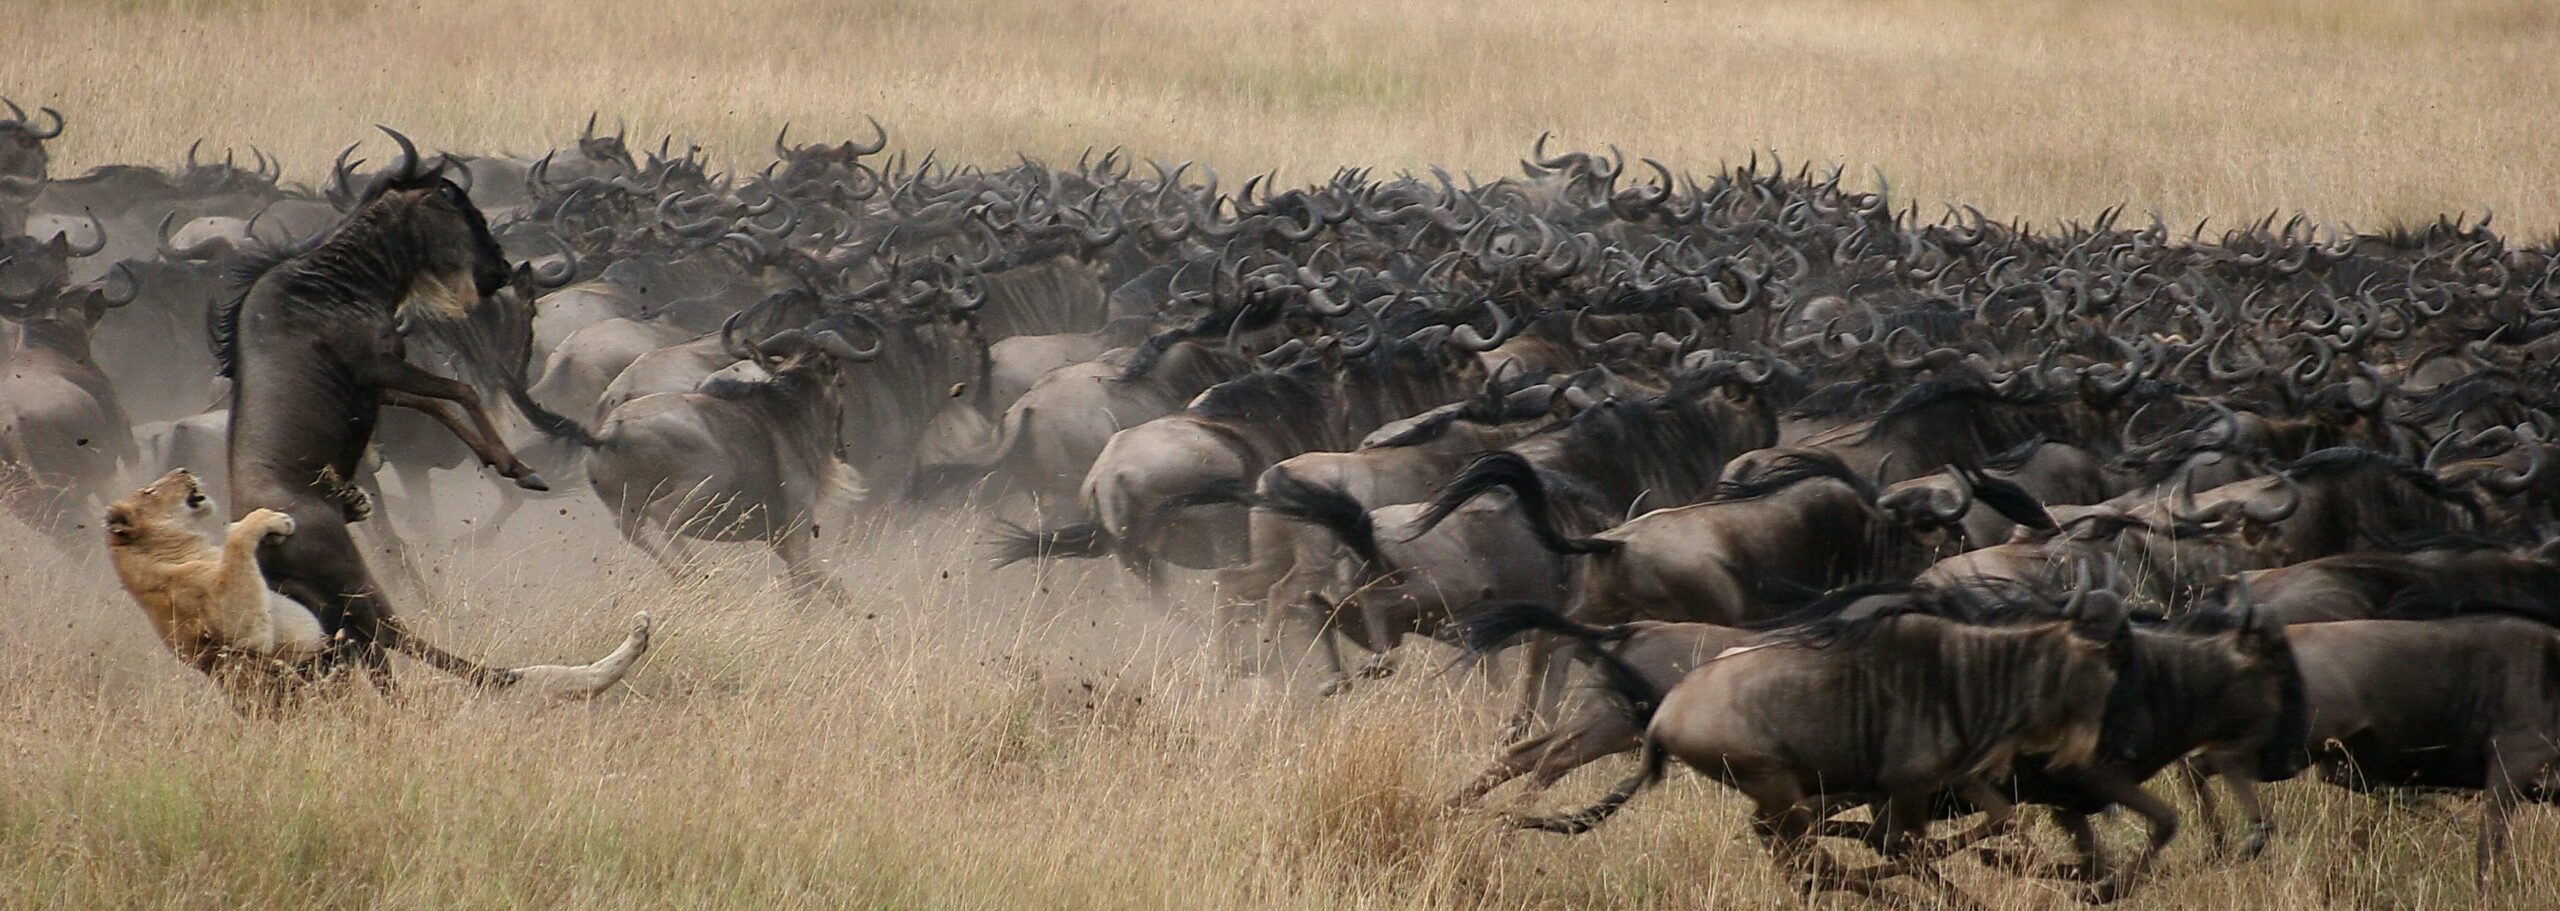 lion hunting a herd of wildebeest in the brown grass